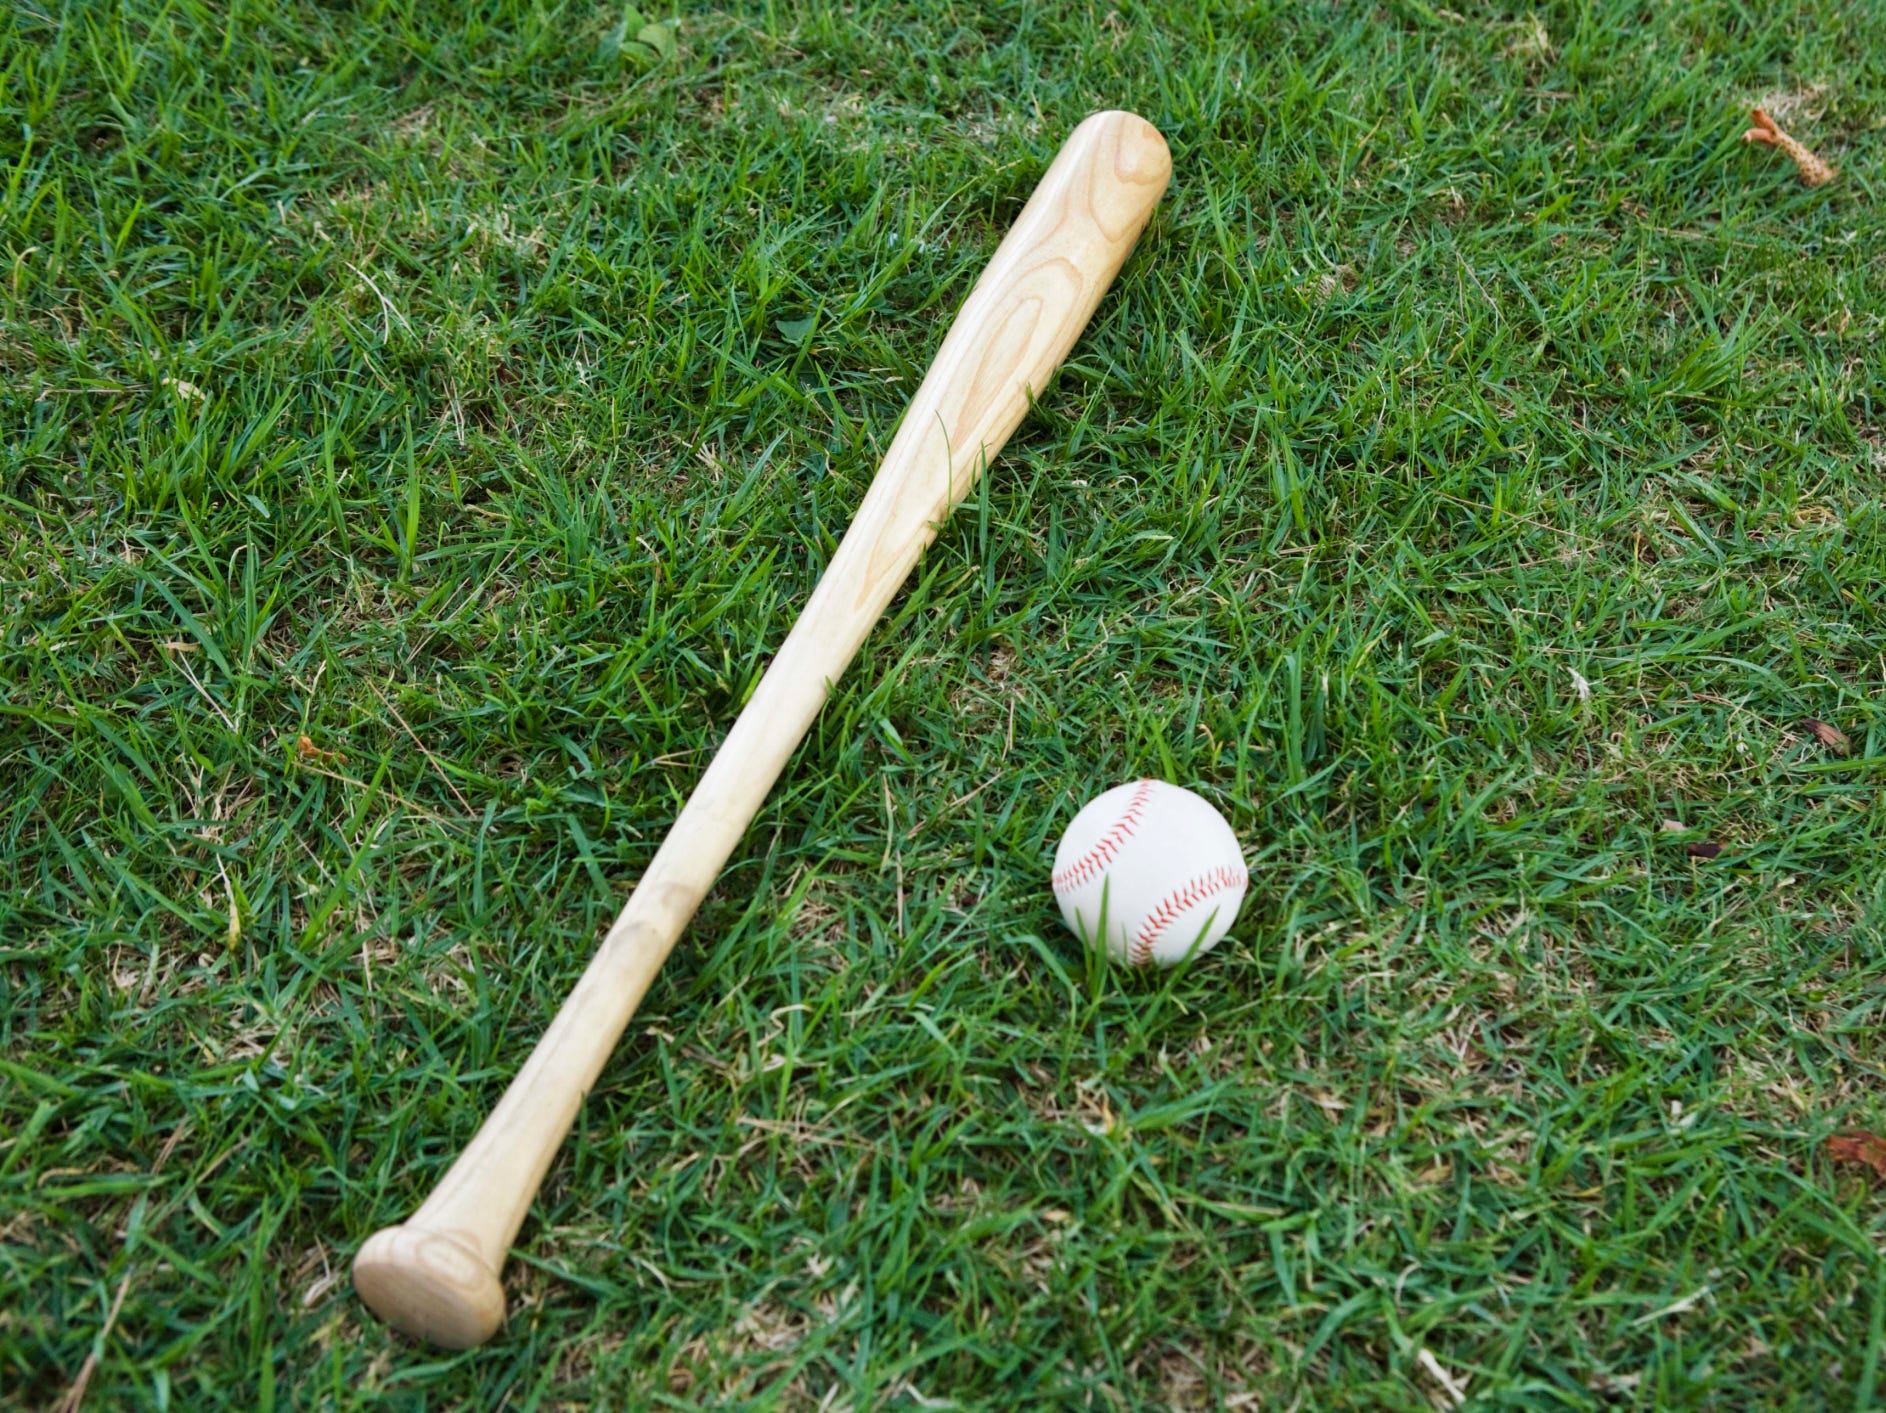 Millville's sluggers compete in Phillies Home Run Derby